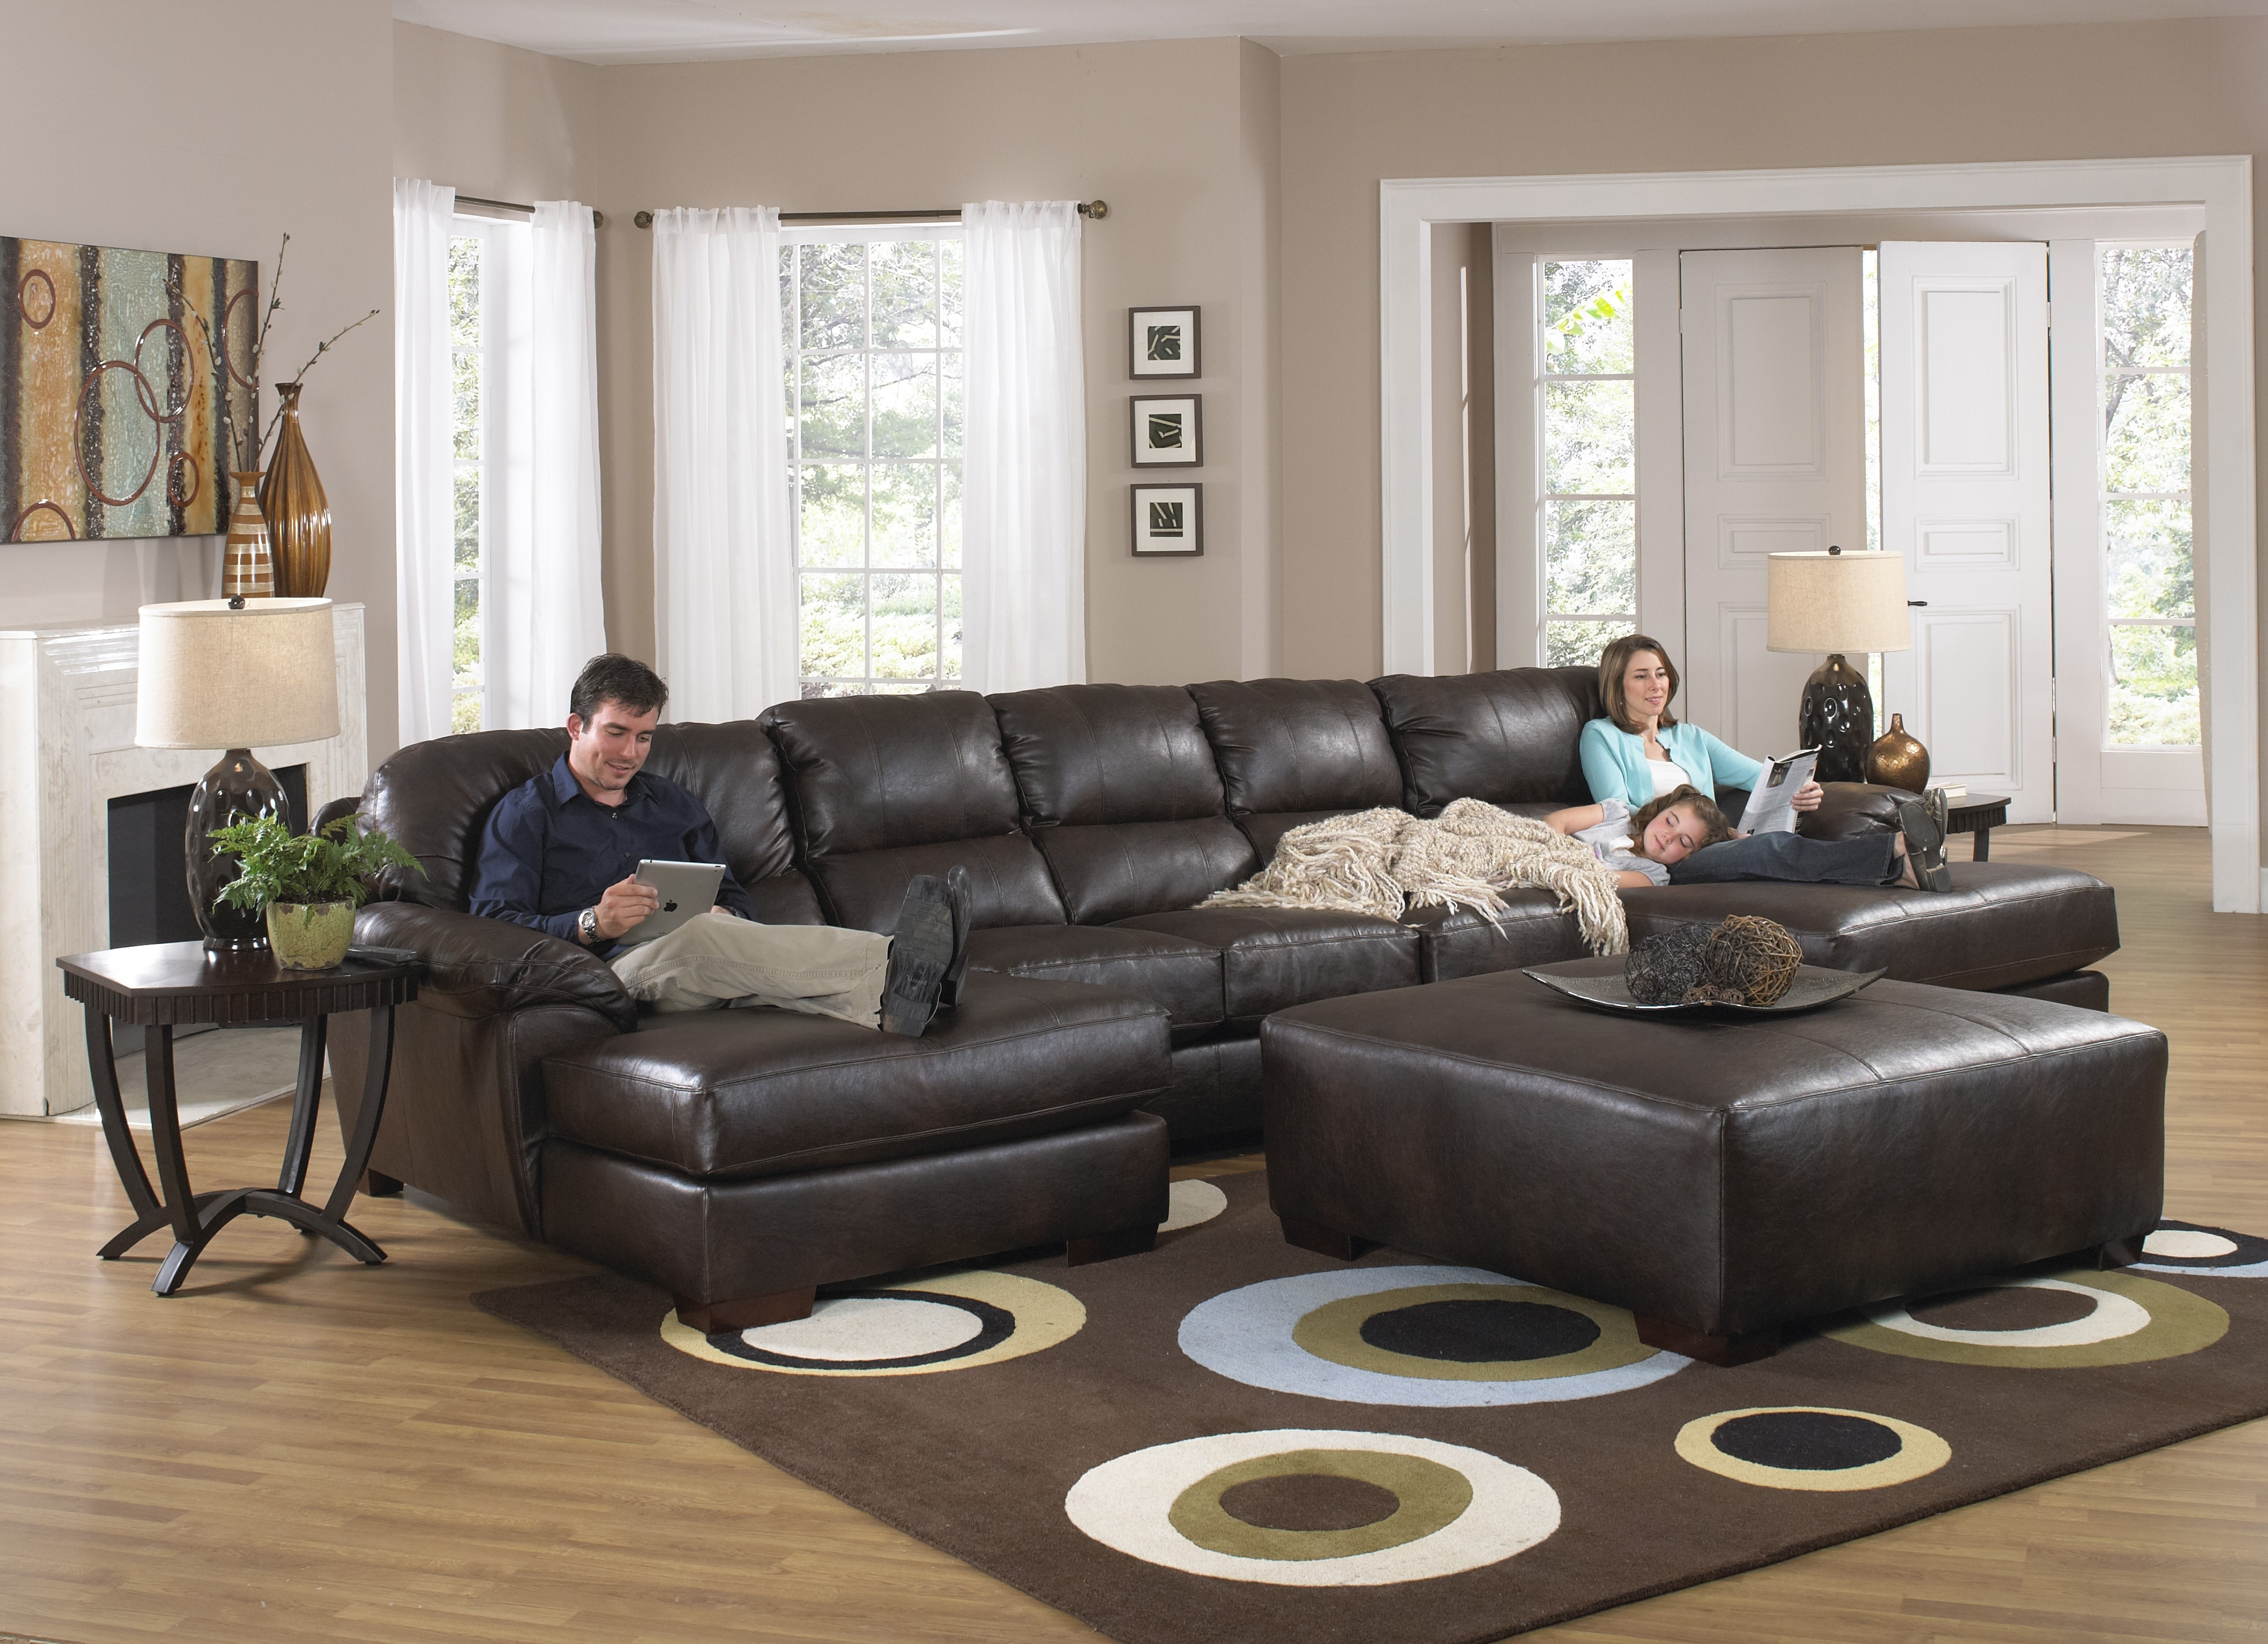 Current Chaise Recliners Intended For Appealing Leather Sectional Sofas With Recliners And Chaise 83 For (View 4 of 15)